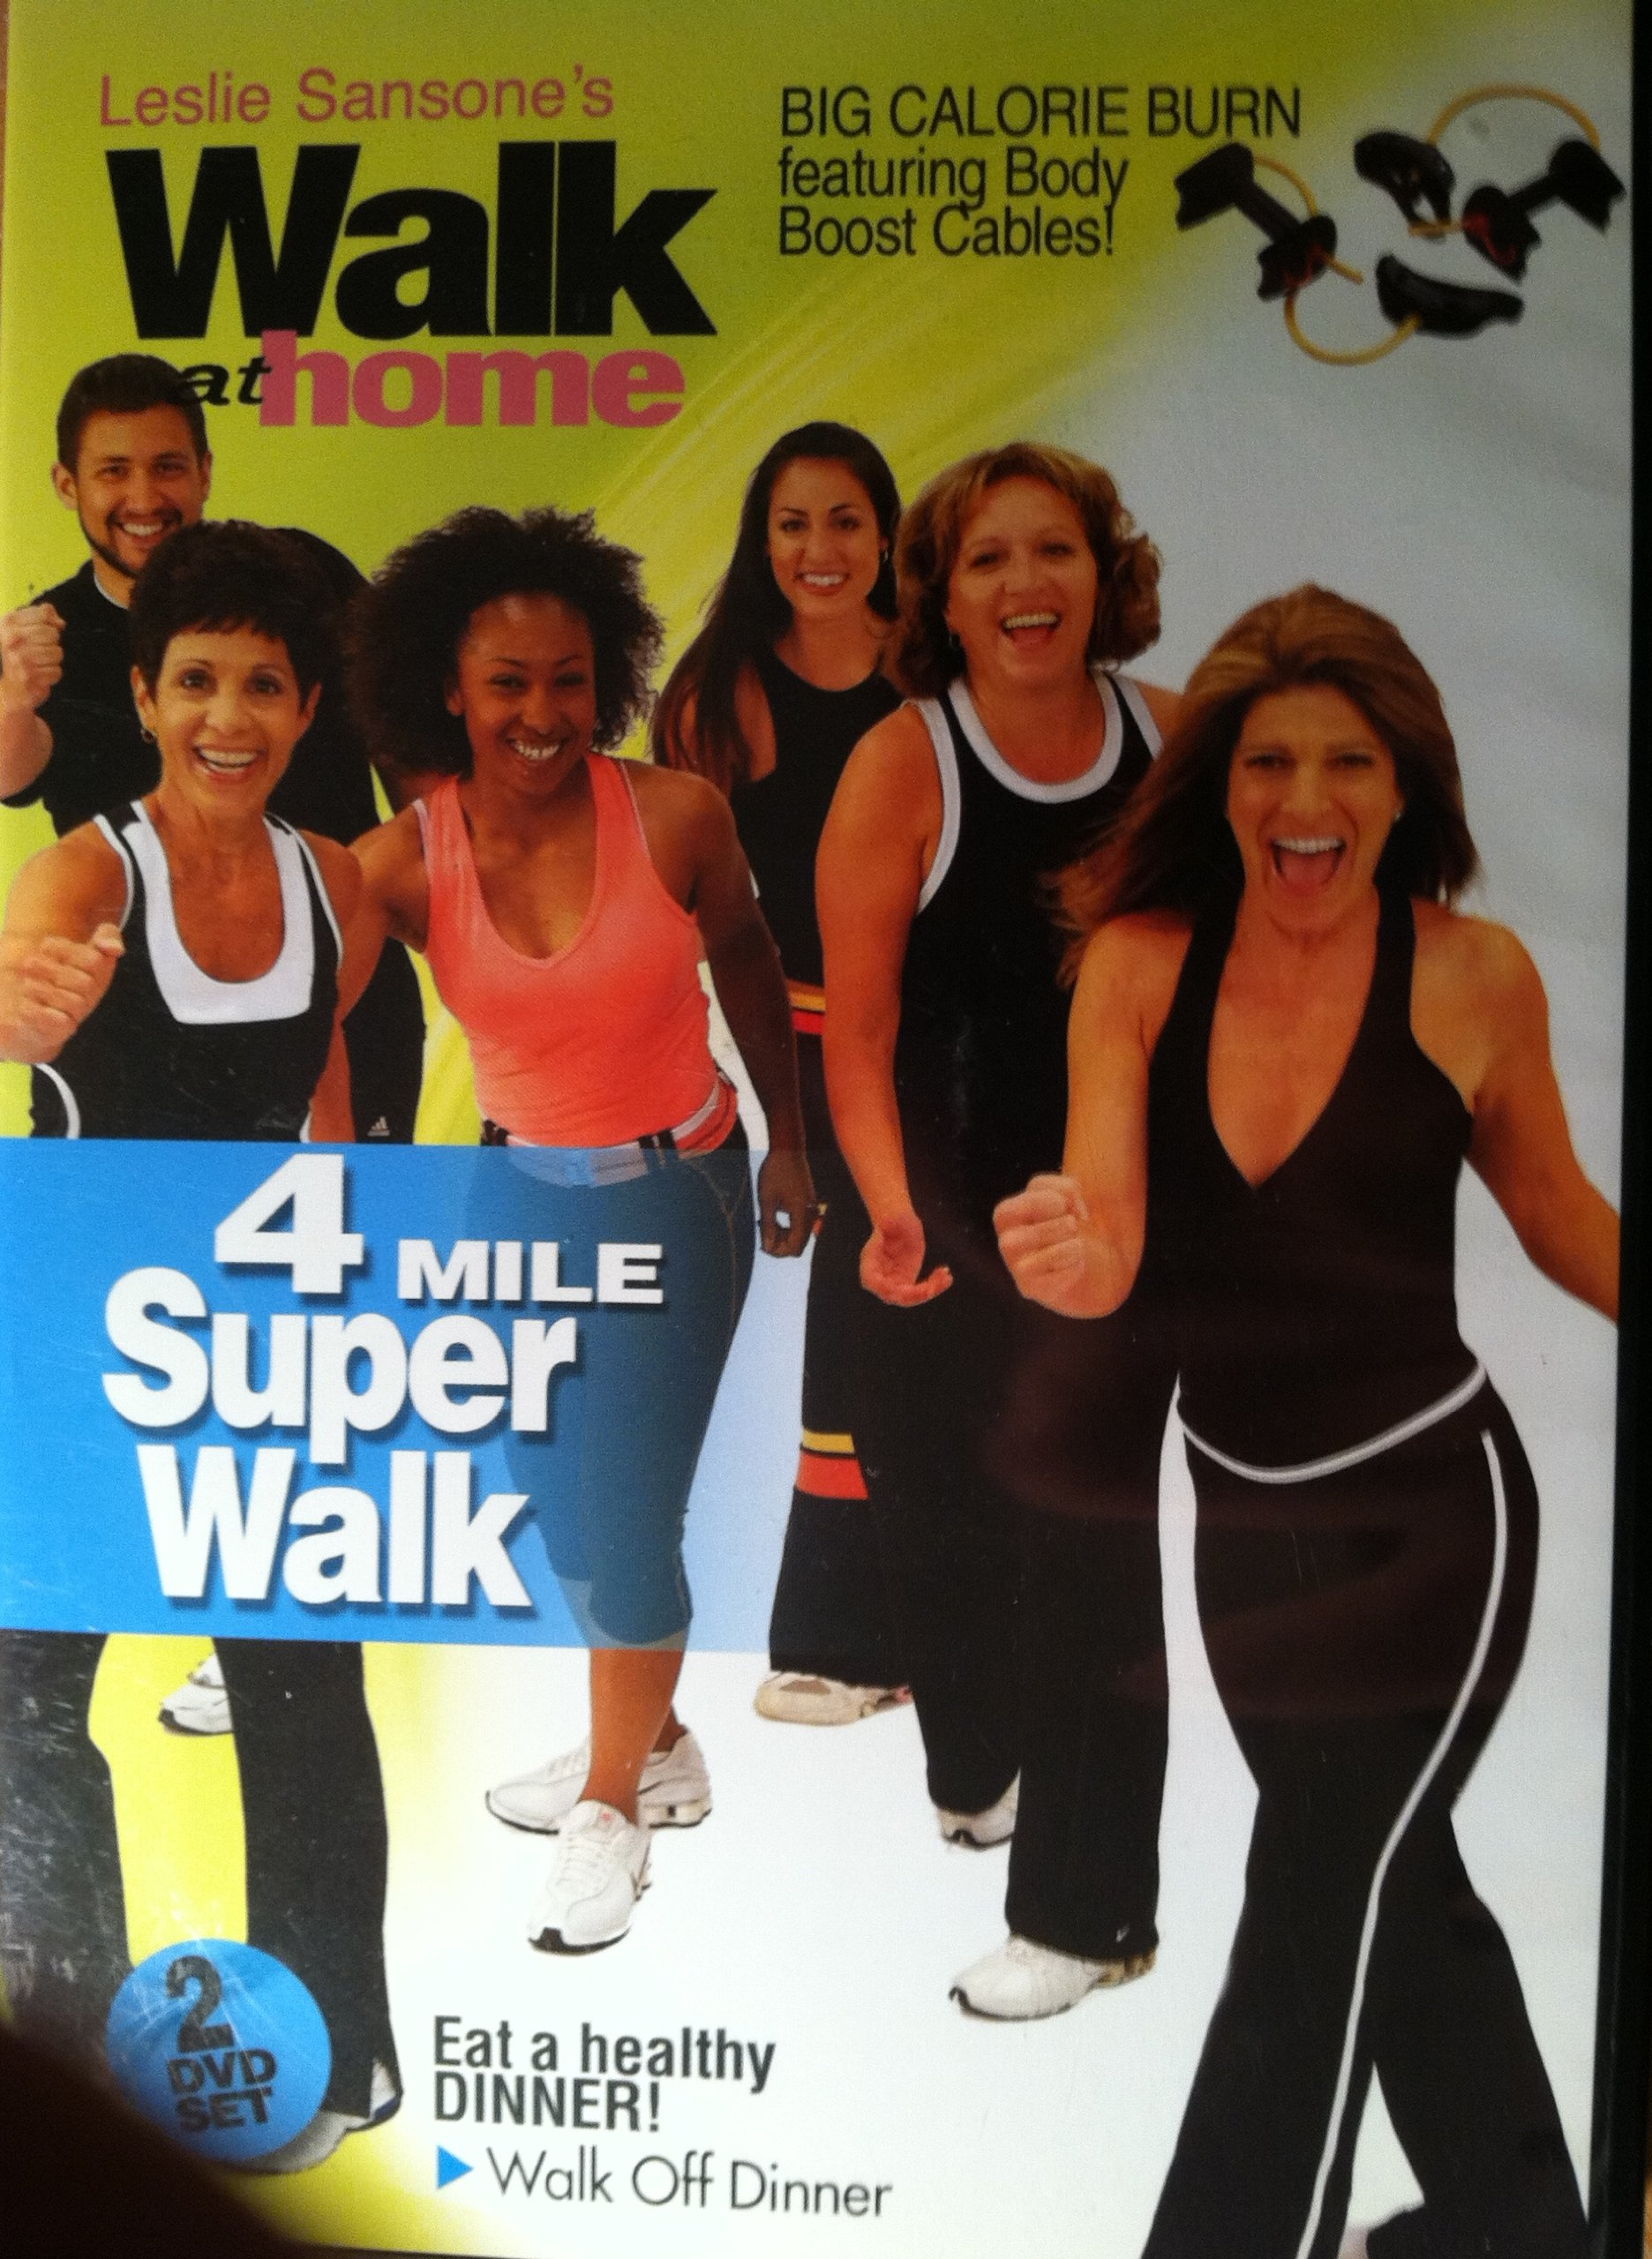 Leslie Sansone's Walk At Home Super Walk. 4 Mile Super Walk. 2 DVD Set by Leslie Sansone